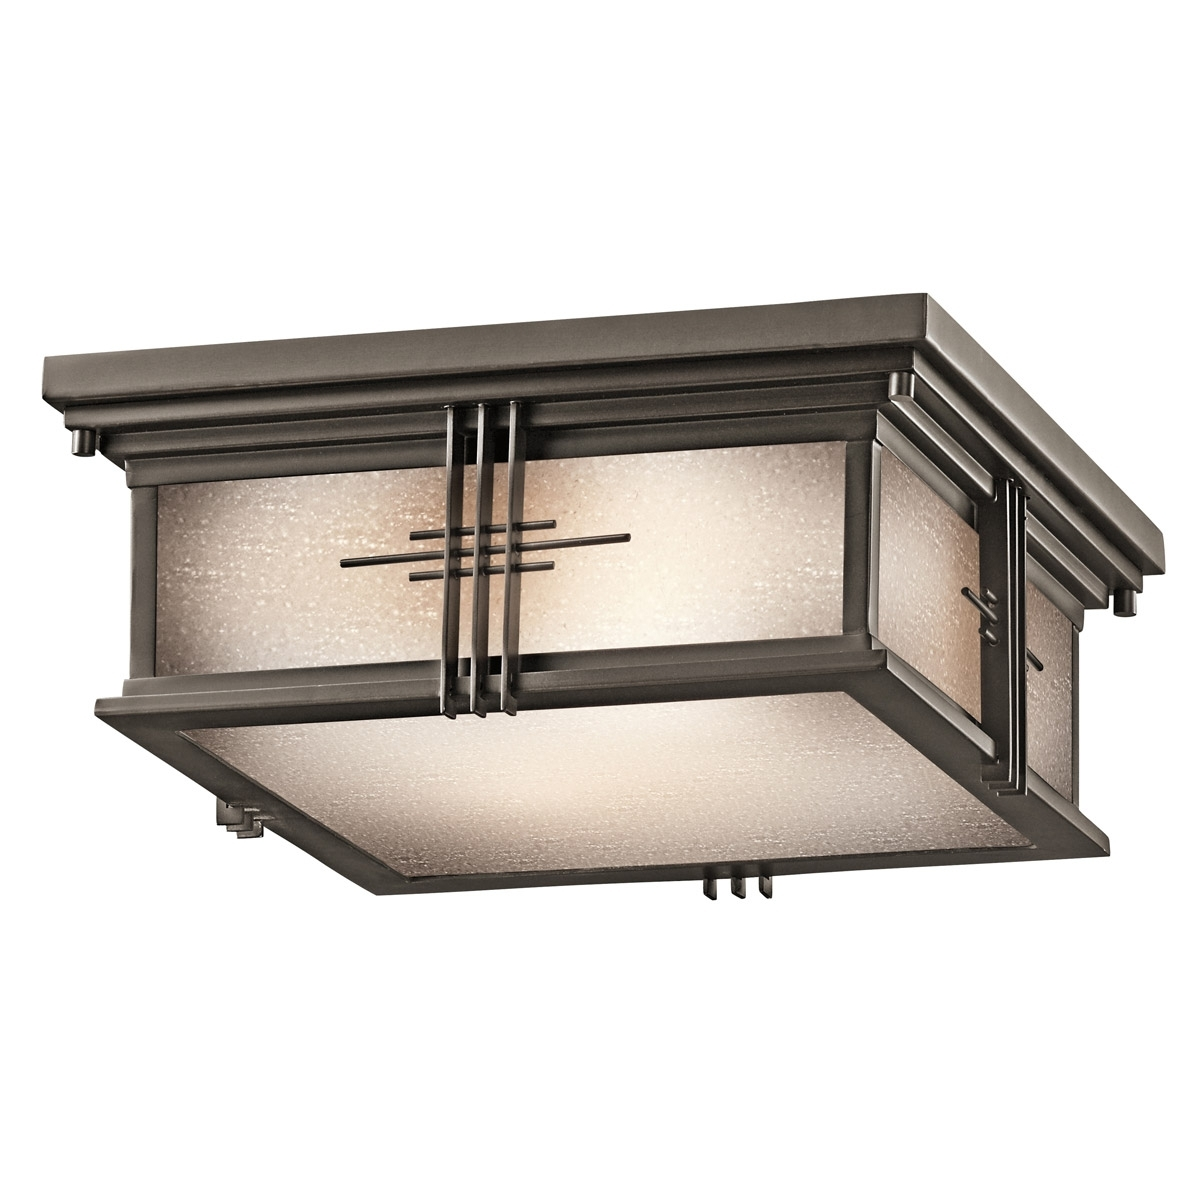 49164Oz Portman Square Outdoor Flush Mount Ceiling Fixture Intended For Most Popular Outdoor Close To Ceiling Lights (Gallery 6 of 20)